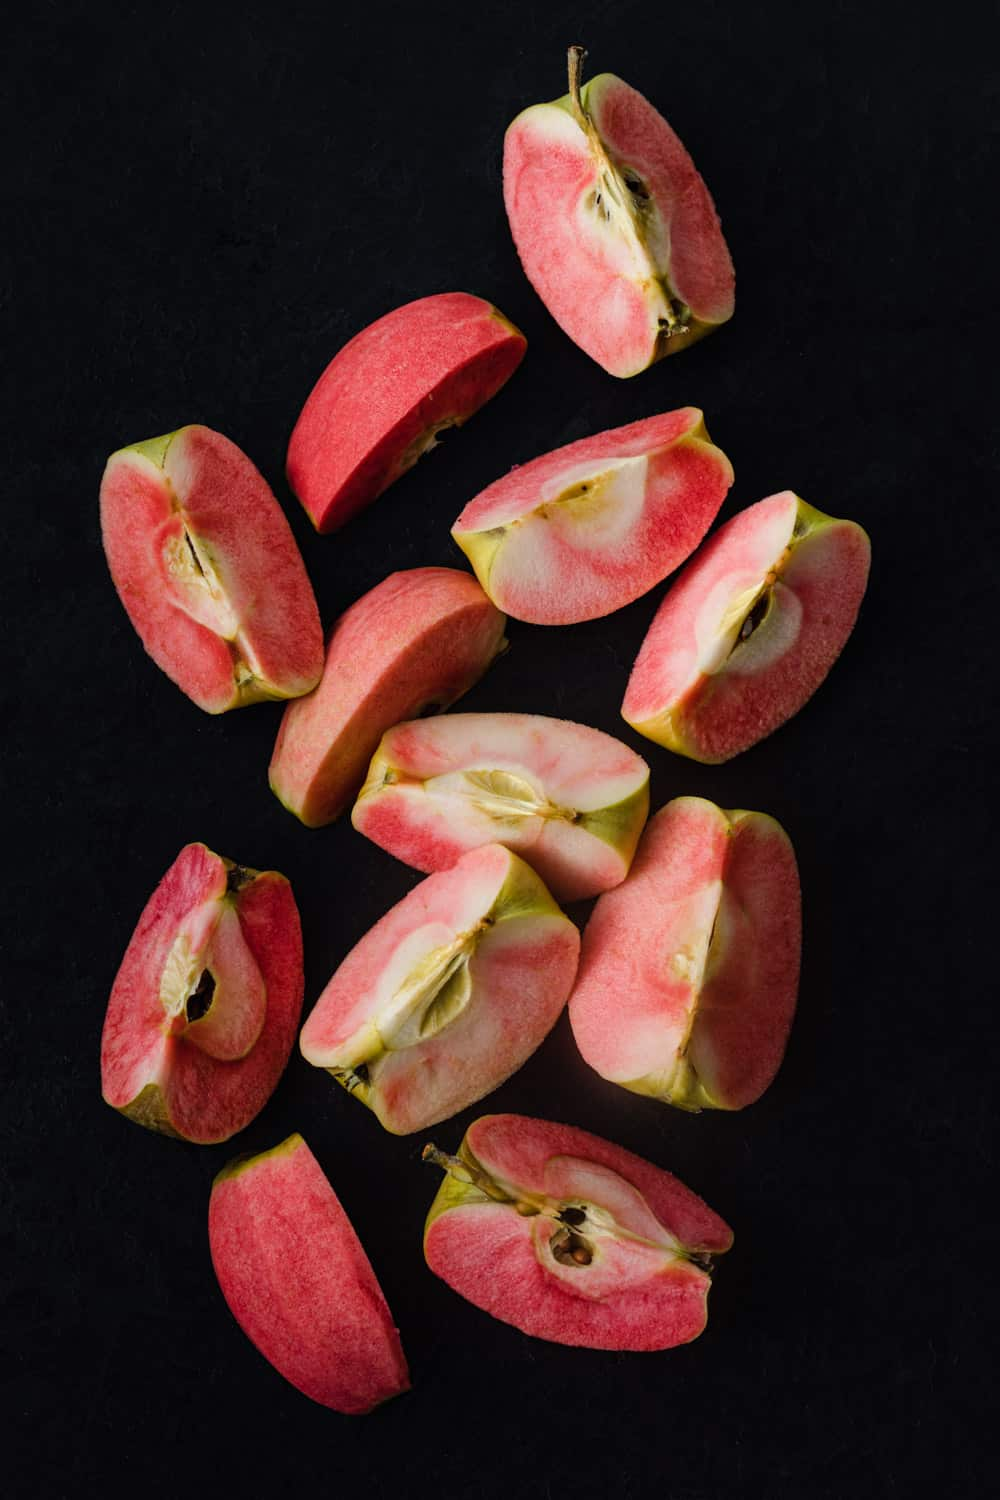 Pink apples peeled and cut into quarters, revealing their rose colored pink flesh. Overhead shot on black background.